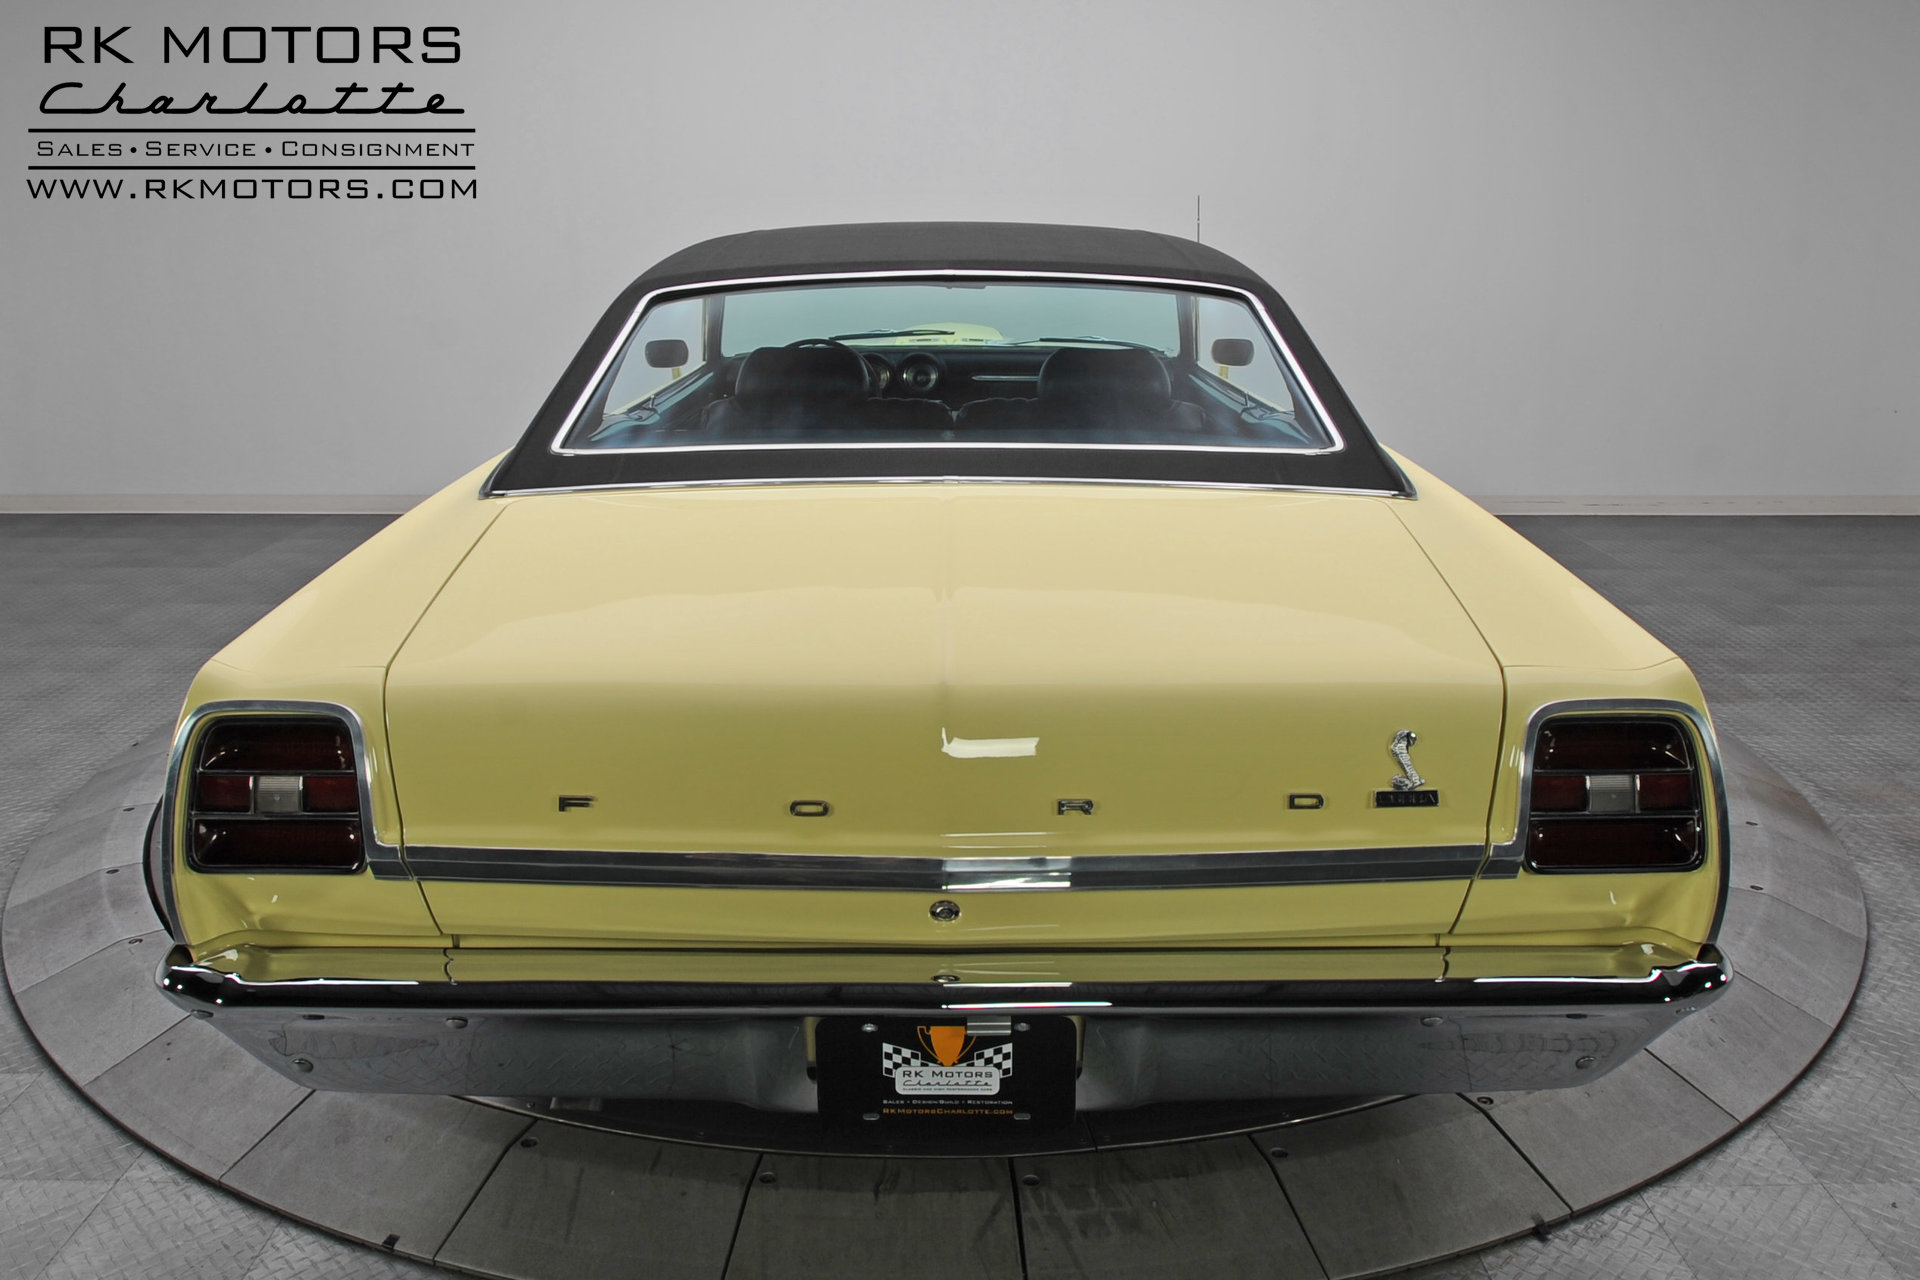 133121 1969 Ford Torino Rk Motors Classic And Performance Cars For Fairlane Muscle Sale